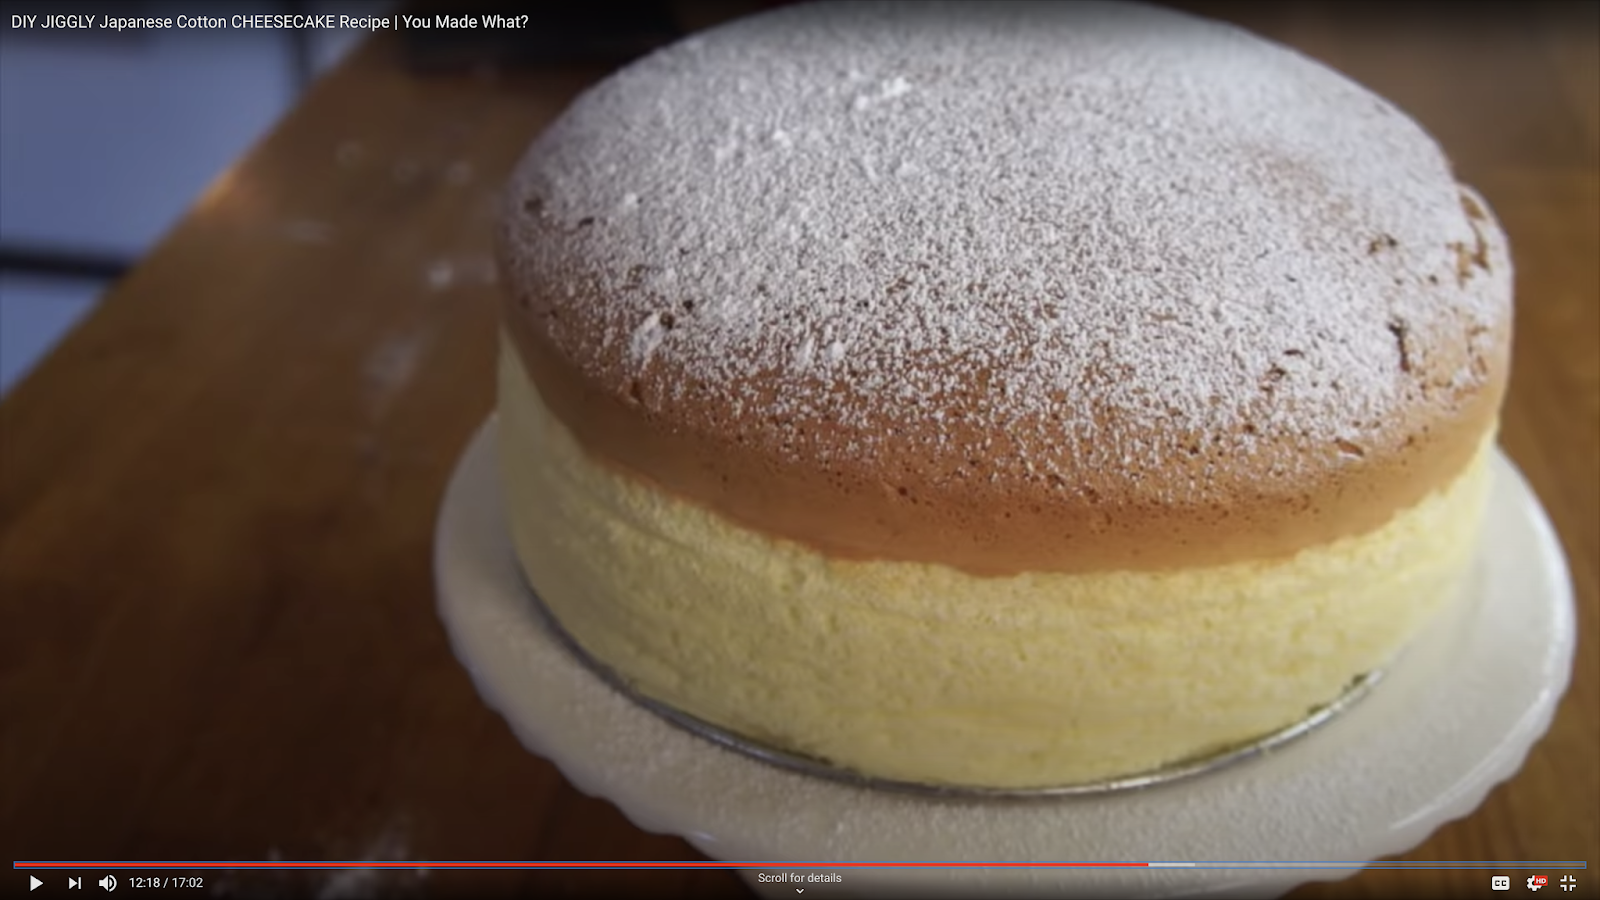 A golden brown puffy Japanese cheesecake dusted with powdered sugar on a cake stand.